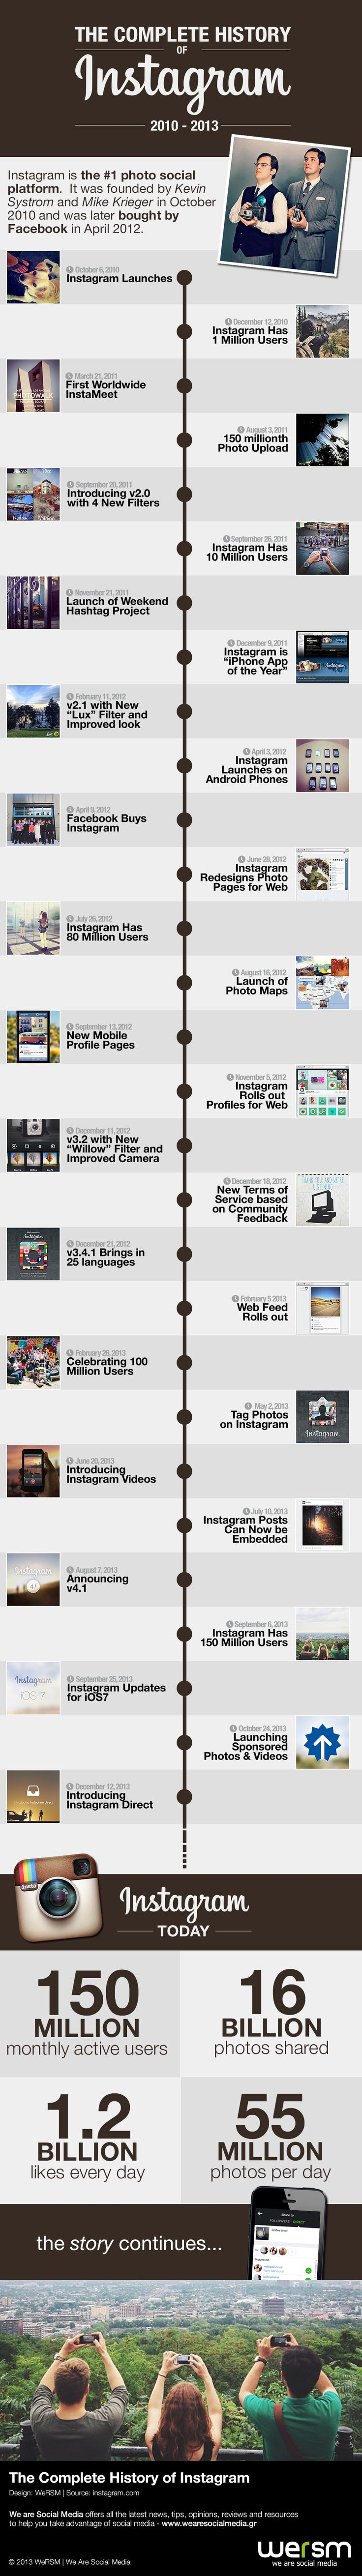 Timeline of Instagram from 2010 to Present [INFOGRAPHIC]